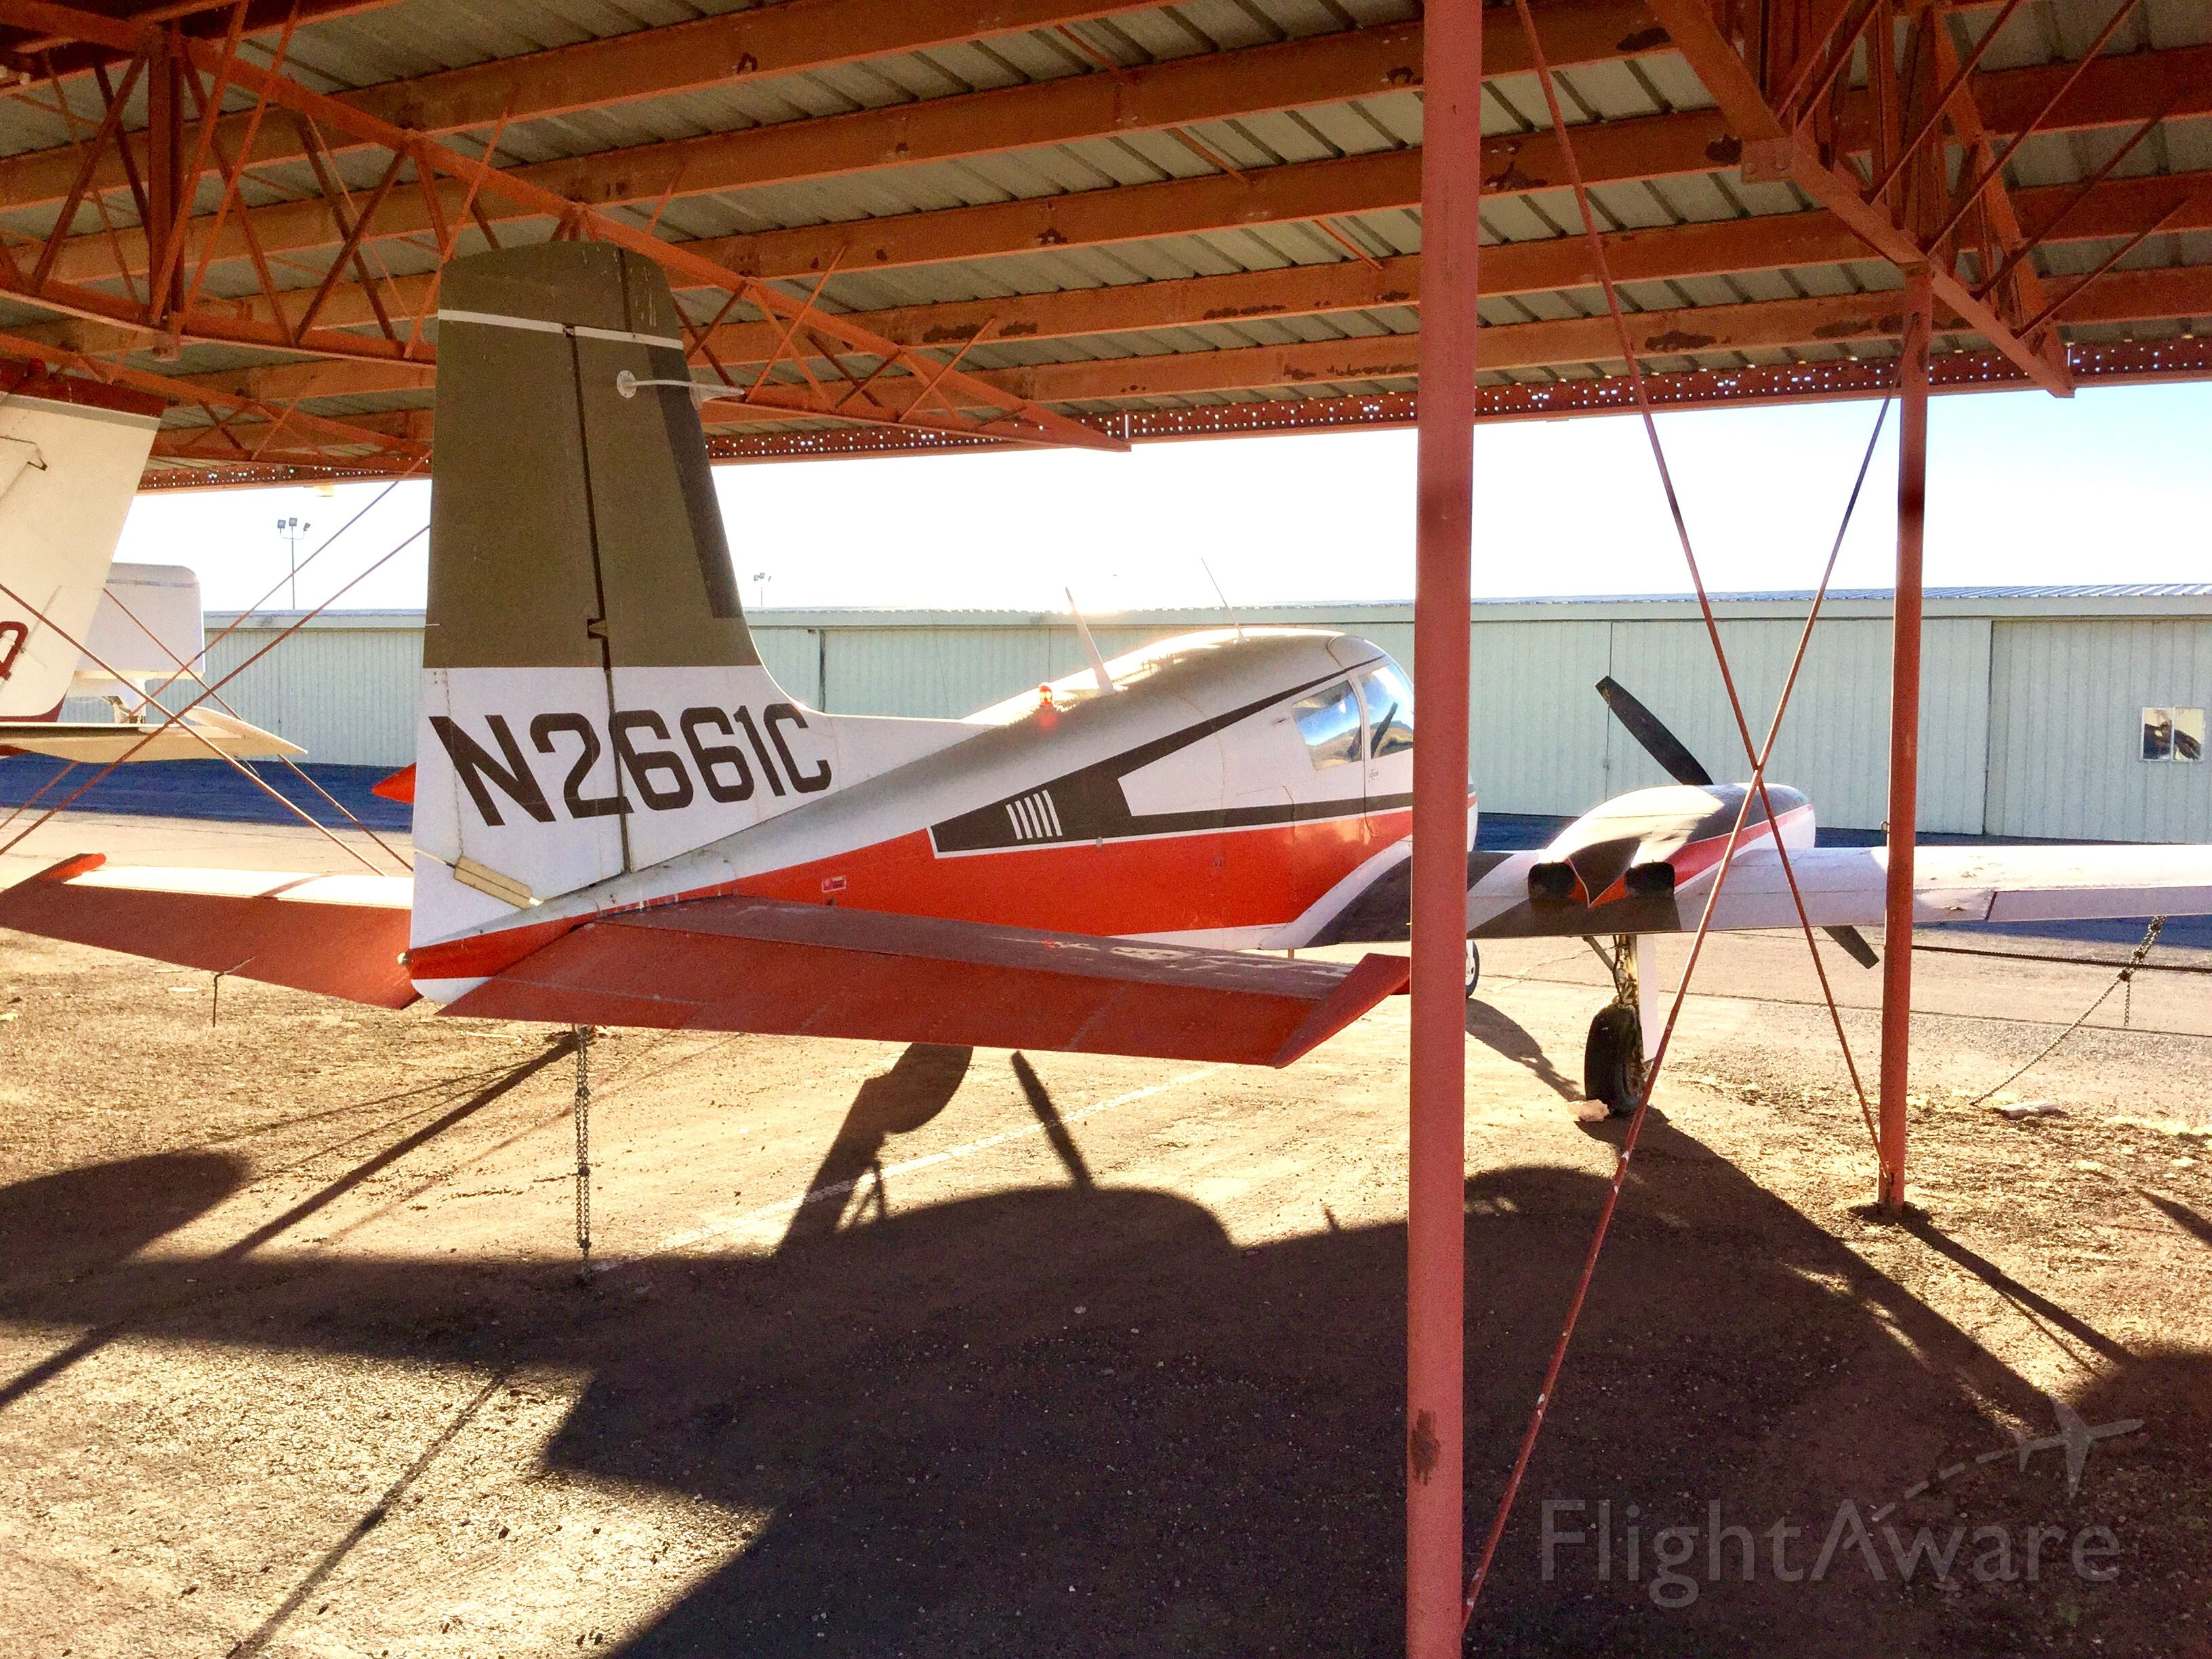 Cessna 310 (N2661C) - This is now a deregistered airplane, and shows to have sat for a very long time.